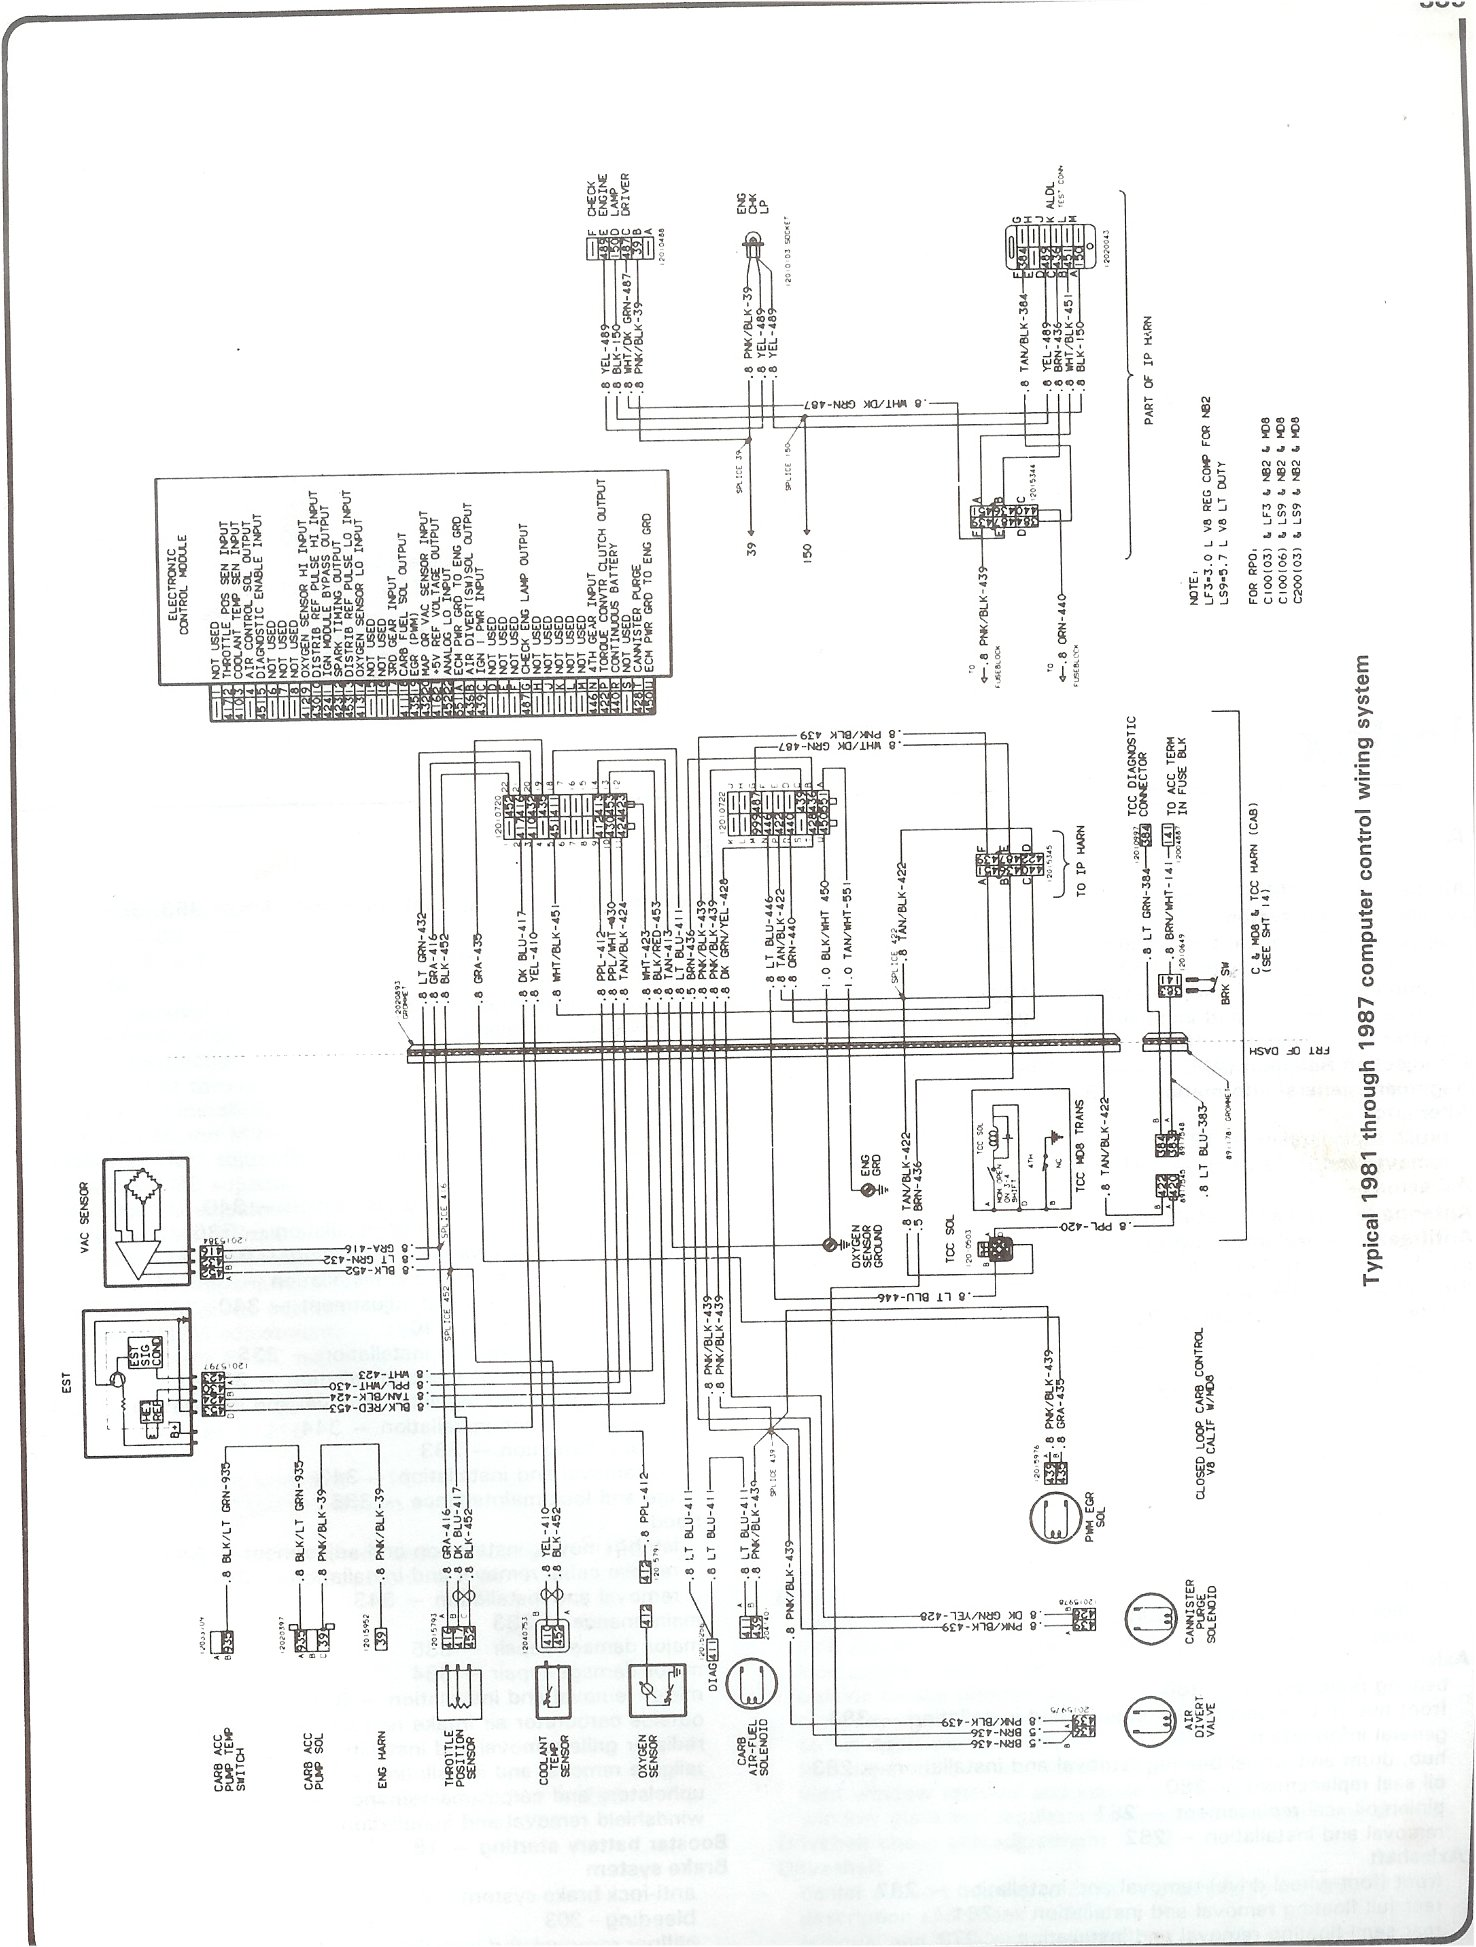 81 87_computer_control_wiring complete 73 87 wiring diagrams gm truck wiring harness at bayanpartner.co